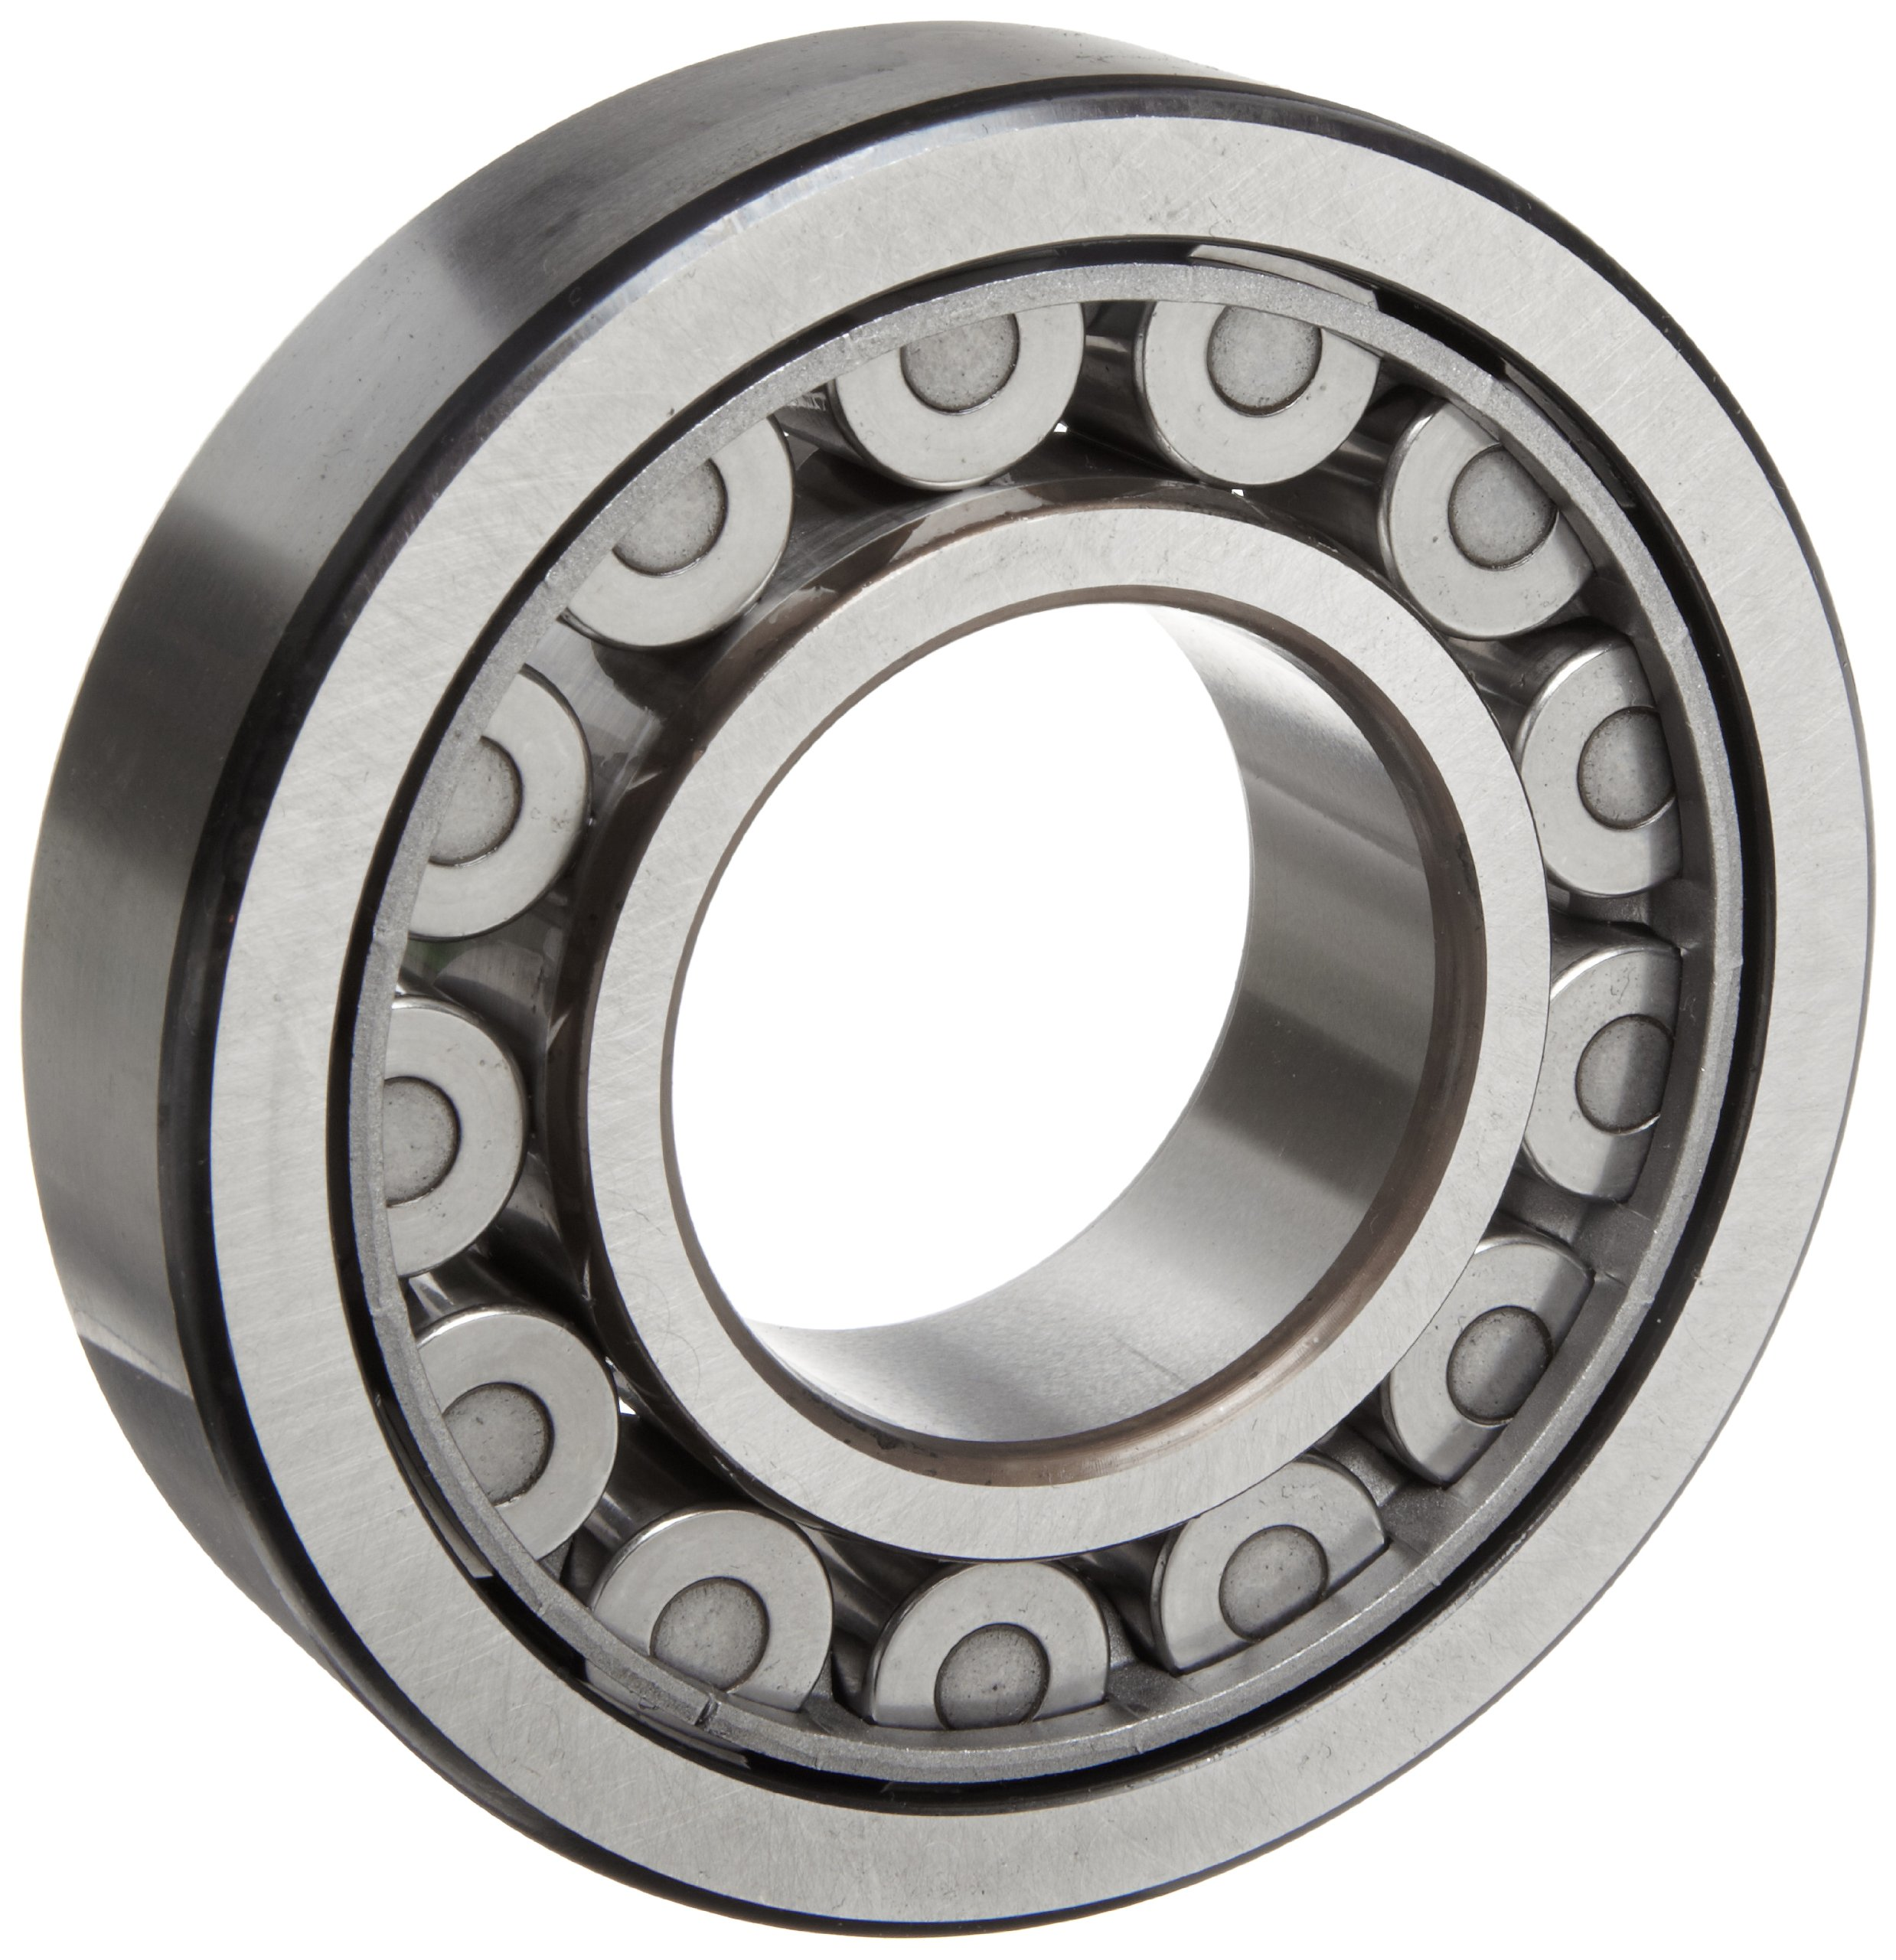 SKF NU 317 ECJ Cylindrical Roller Bearing, Removable Inner Ring, Straight, High Capacity, Steel Cage, Metric, 85mm Bore, 180mm OD, 41mm Width, 3600rpm Maximum Rotational Speed, 75300lbf Static Load Capacity, 66800lbf Dynamic Load Capacity